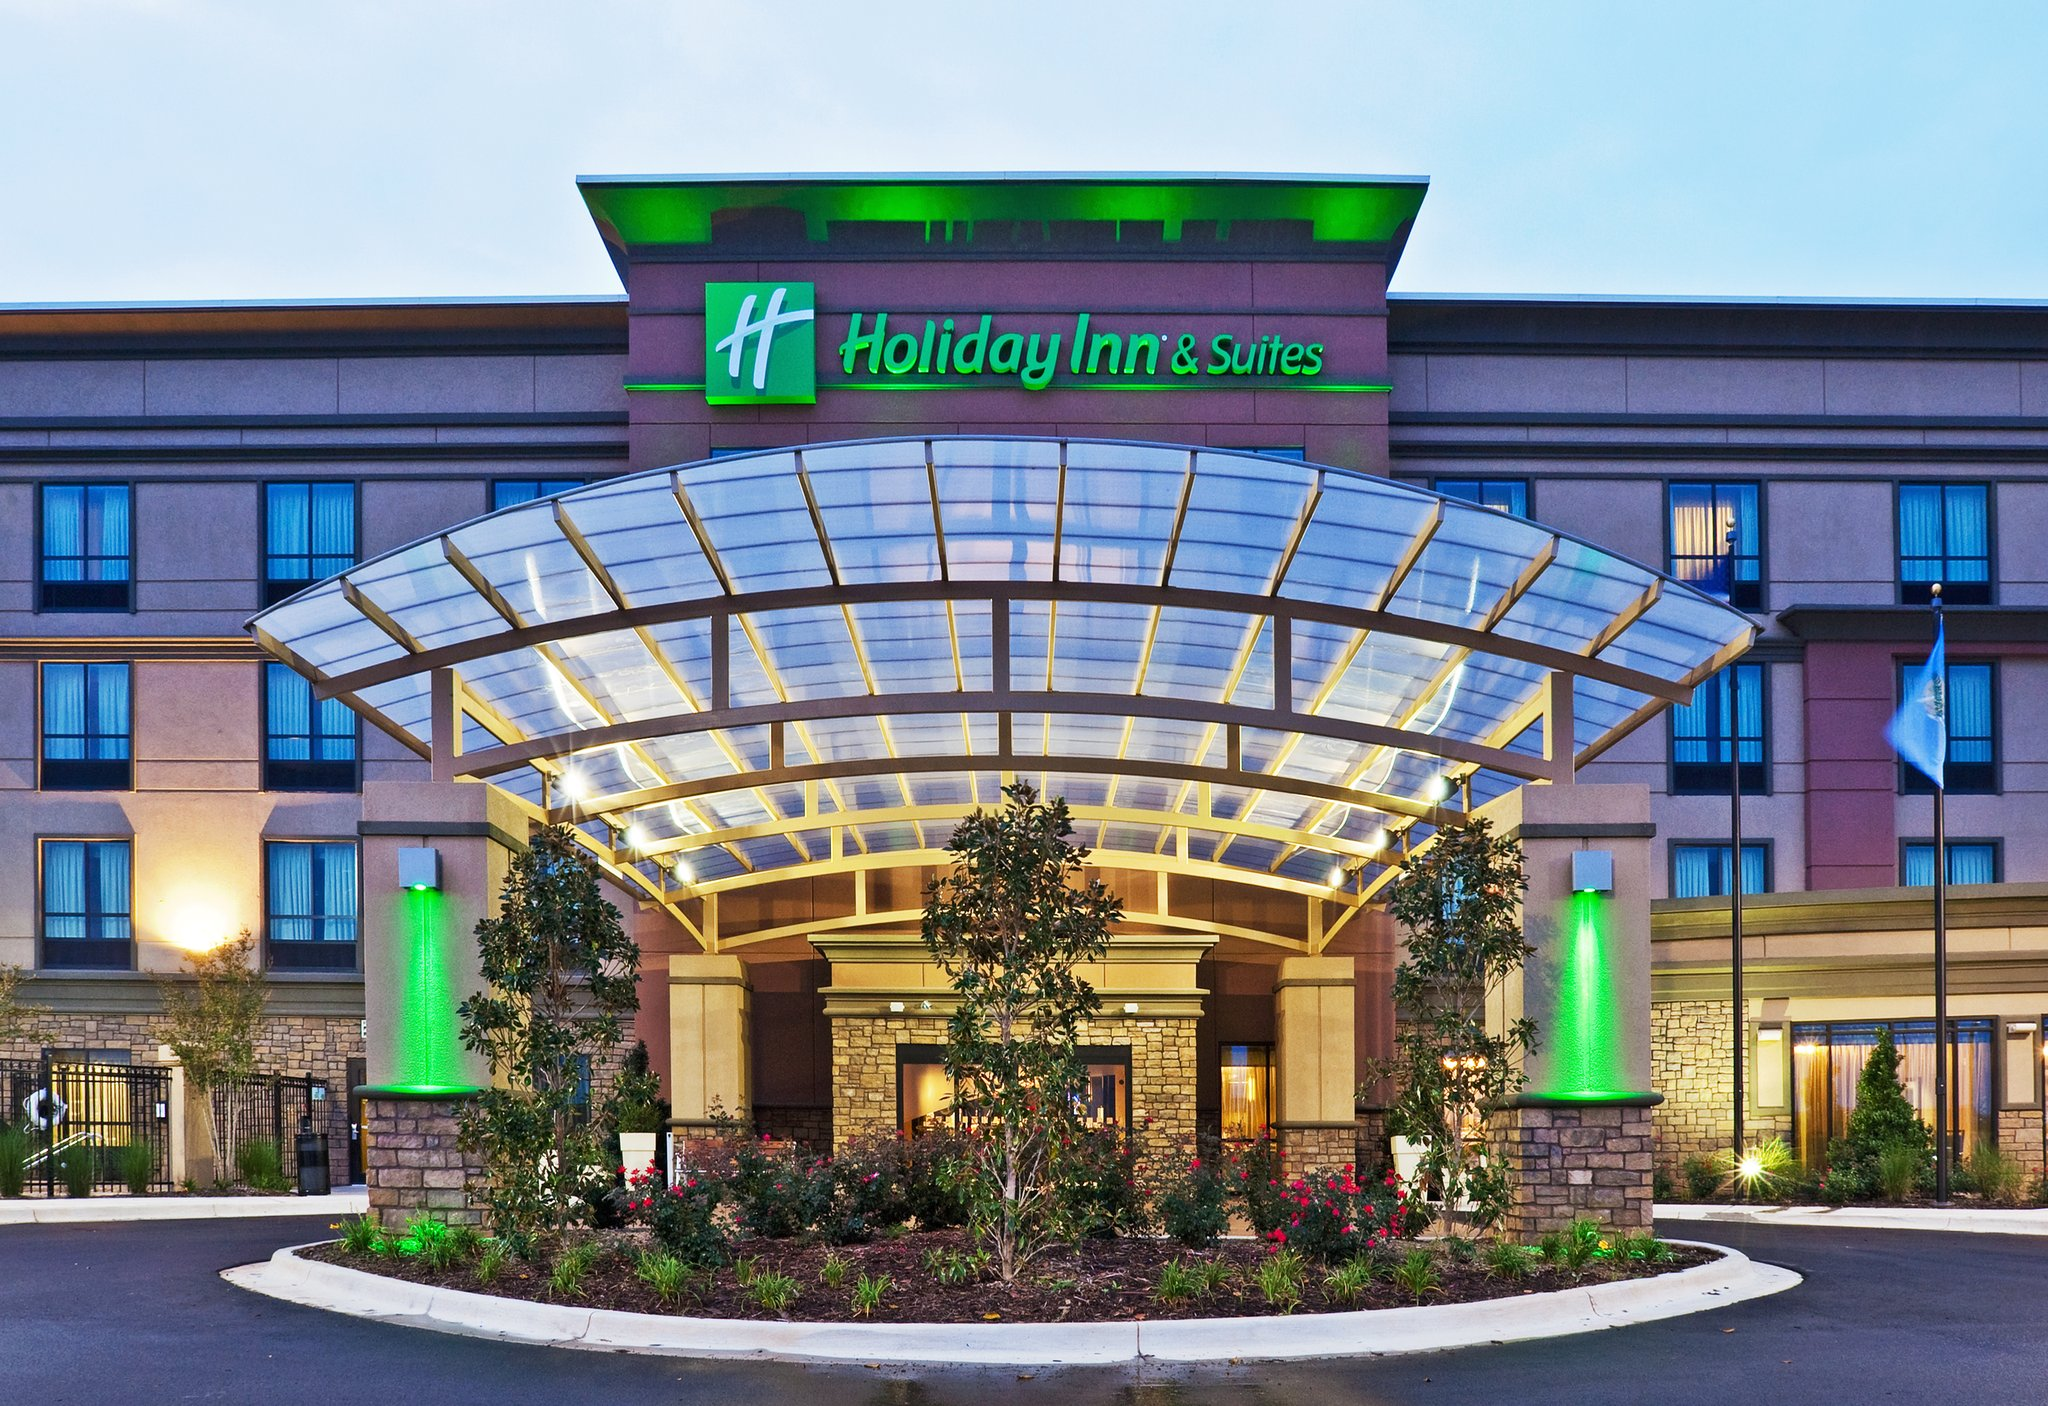 Holiday Inn & Suites - University